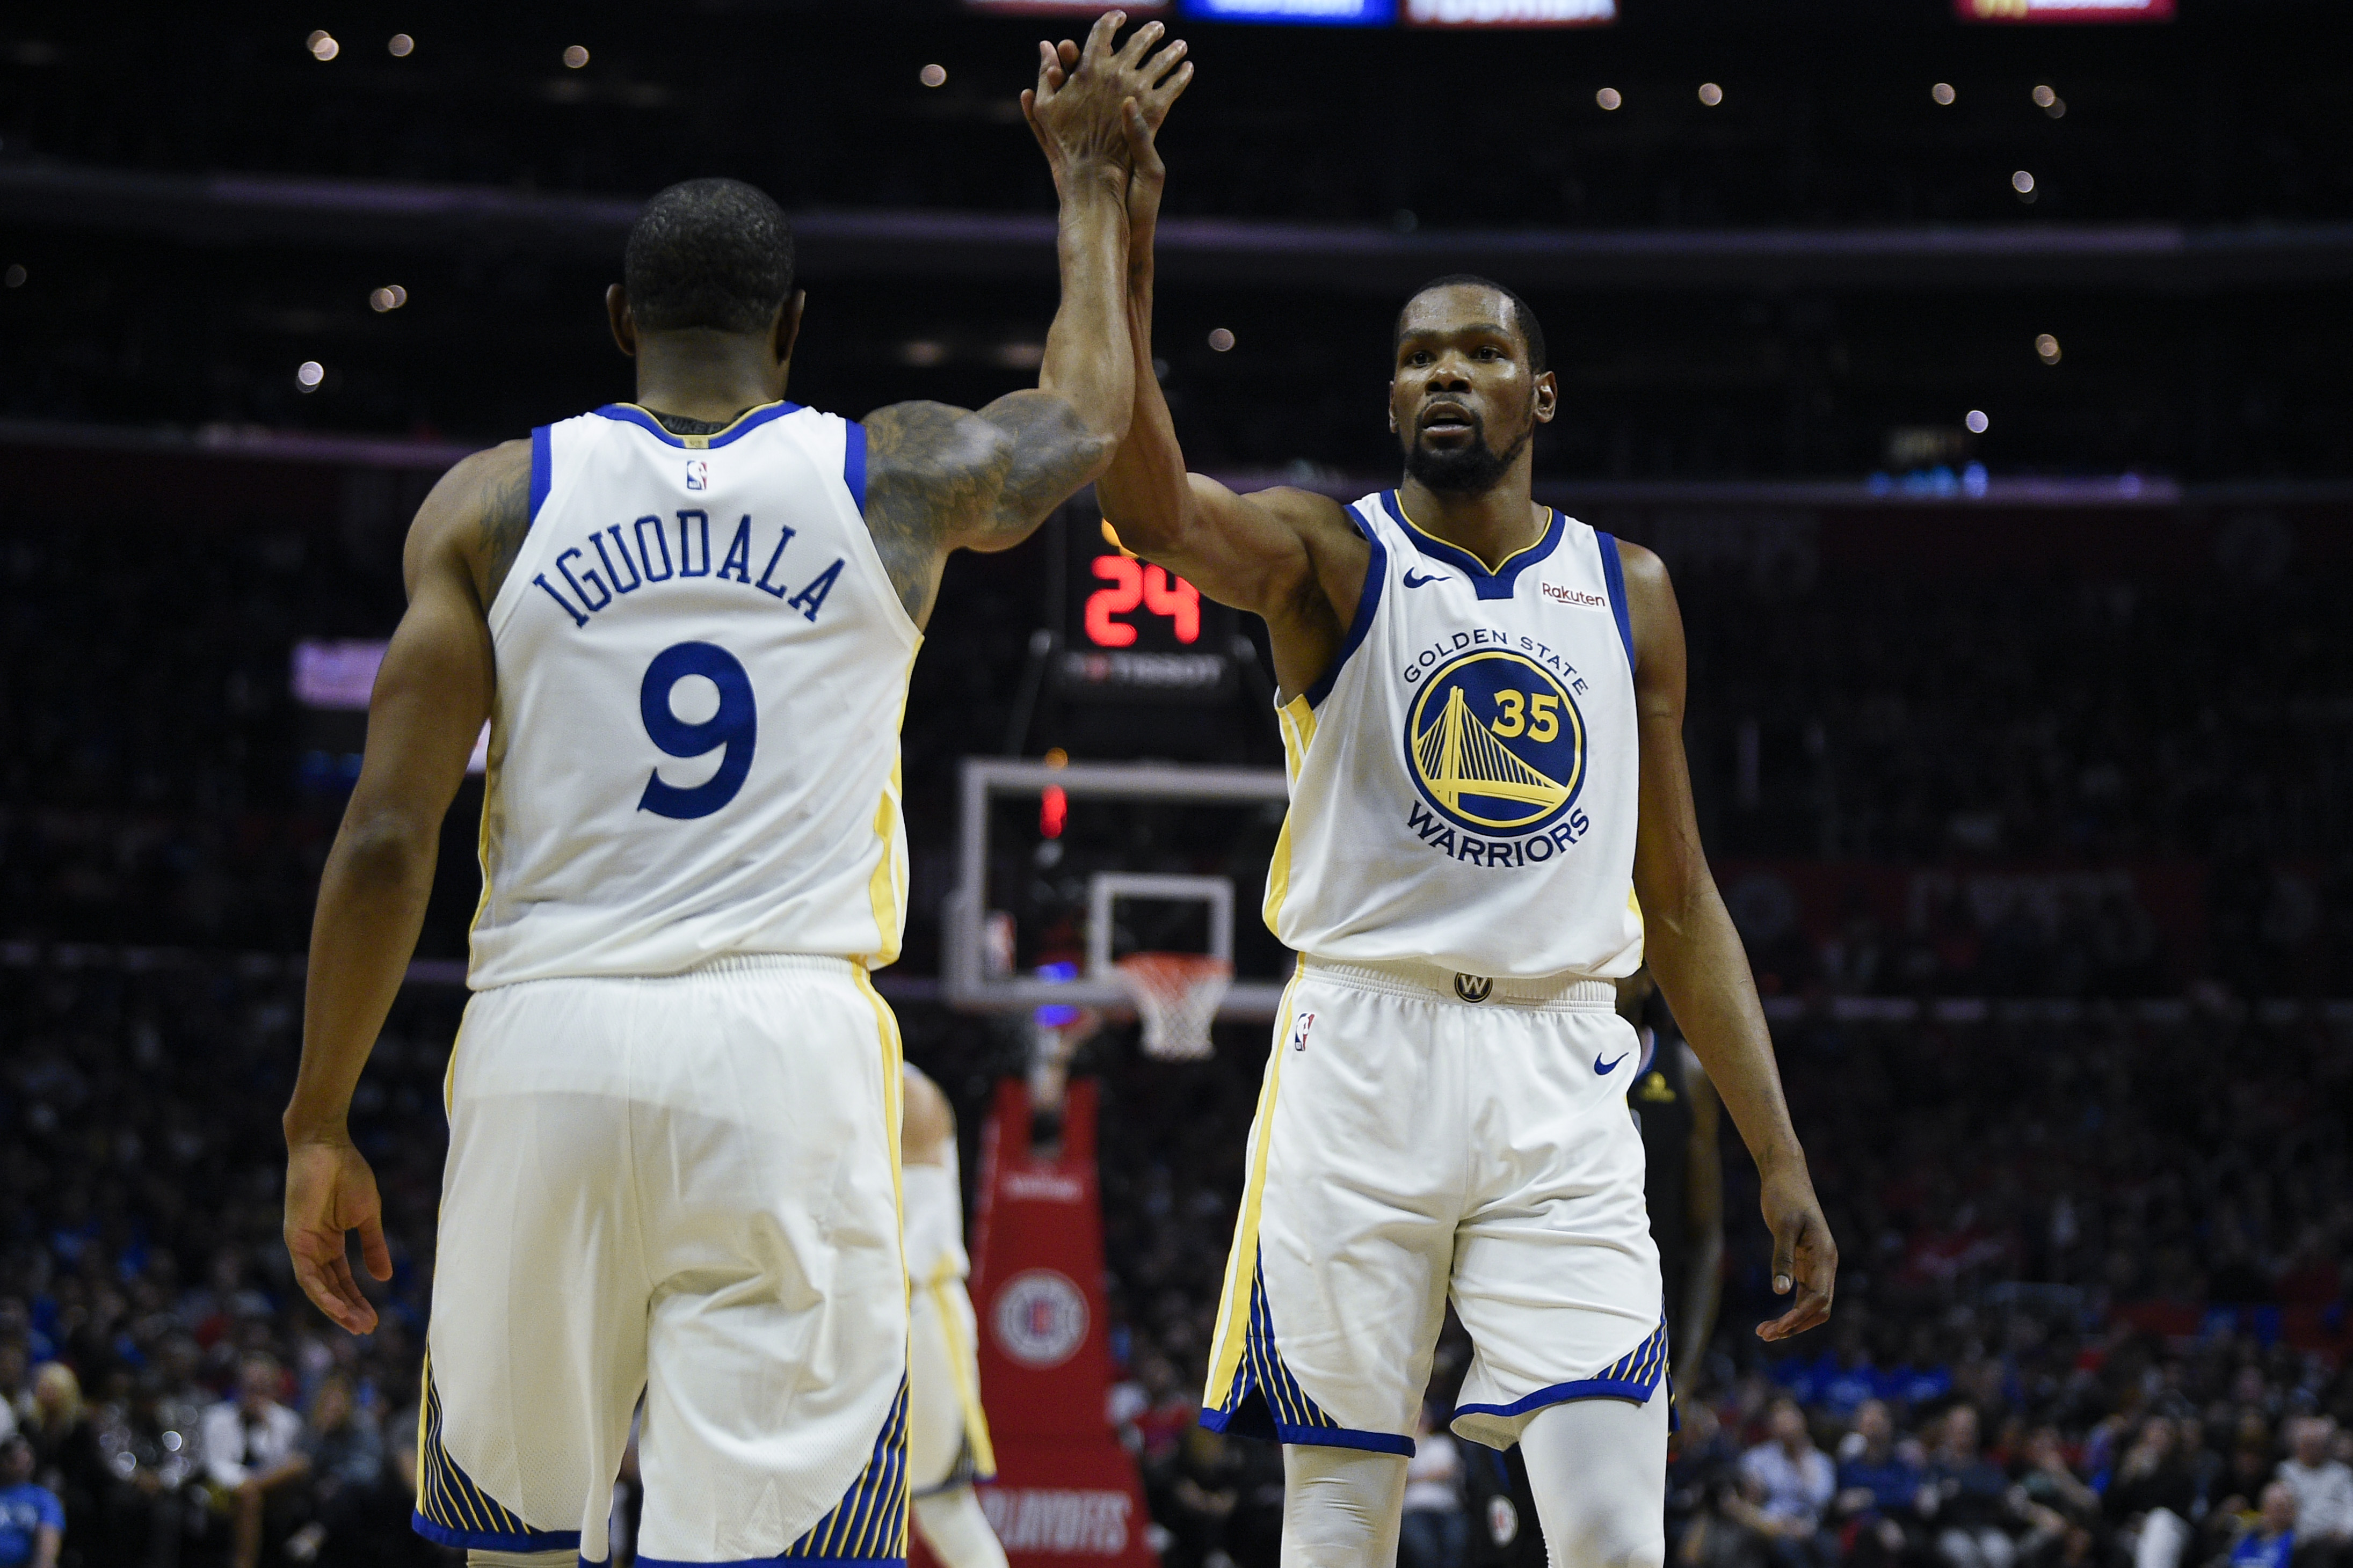 Clippers vs. Warriors: Kevin Durant made sure everyone knew who he was